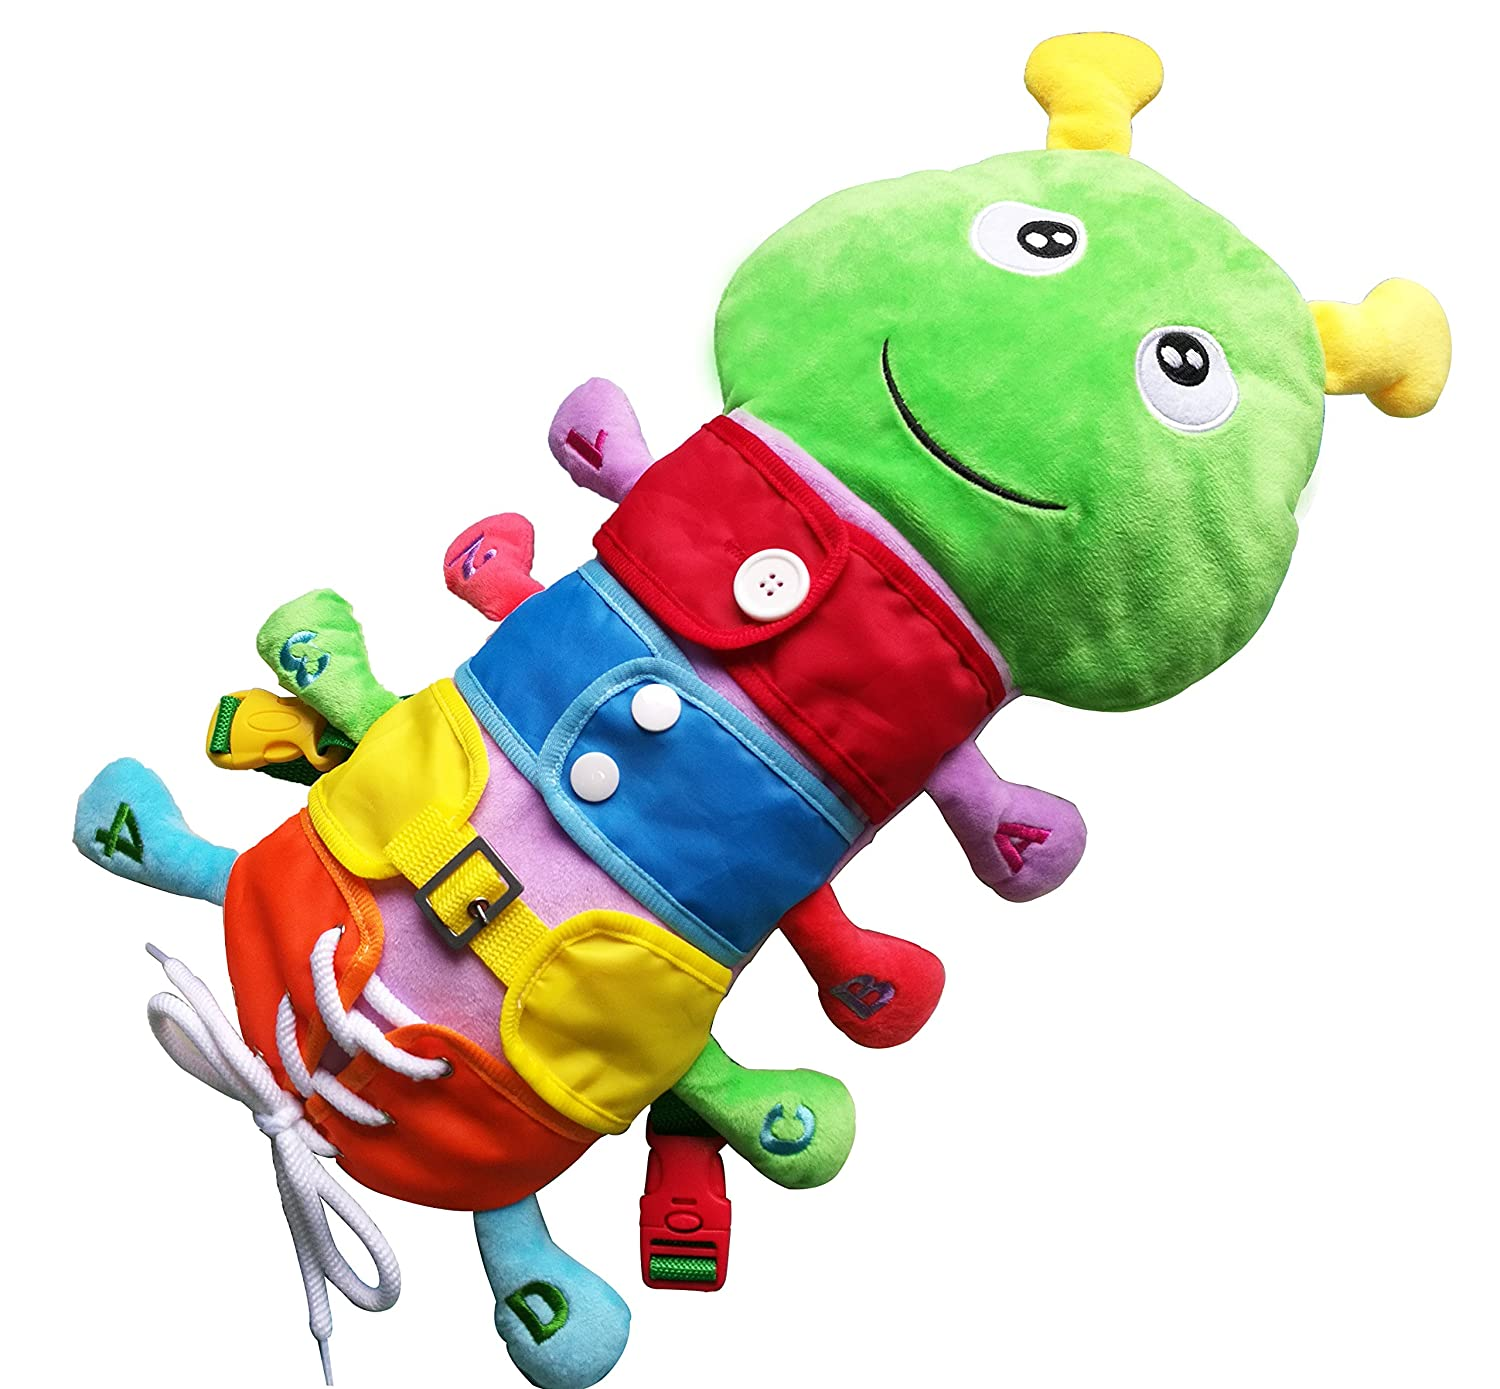 Yoovi Montessori Learn to Dress Zip Snap Button Buckle Lace Caterpillar Plush Toys for Kids Early Learning Basic Life Skills Toys Houyue